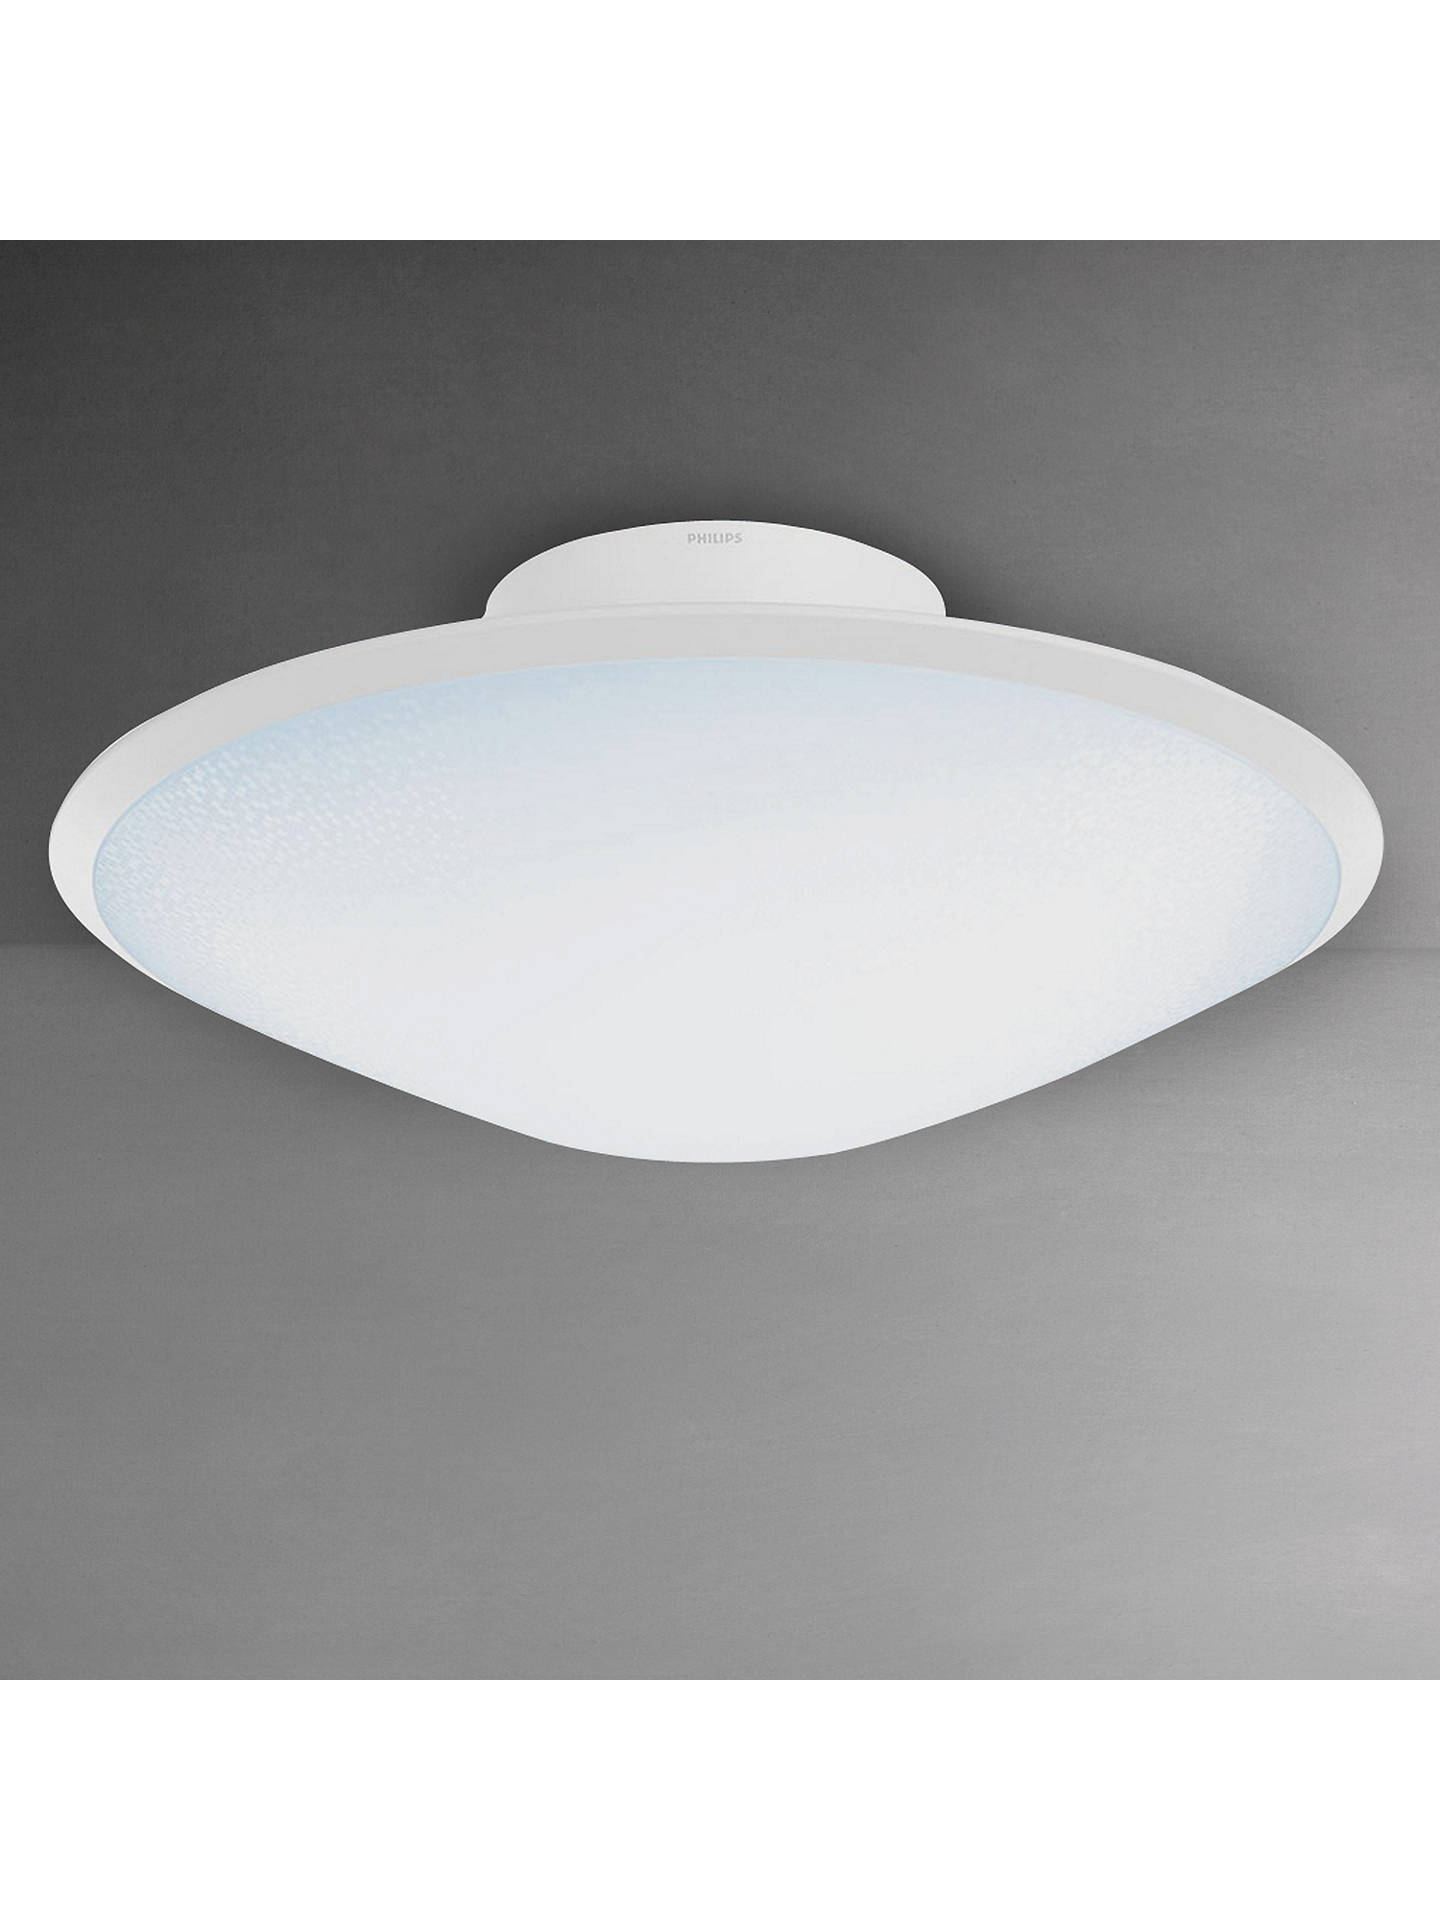 wholesale dealer 0292e e23f6 Philips Hue Phoenix Semi-Flush Ceiling Light